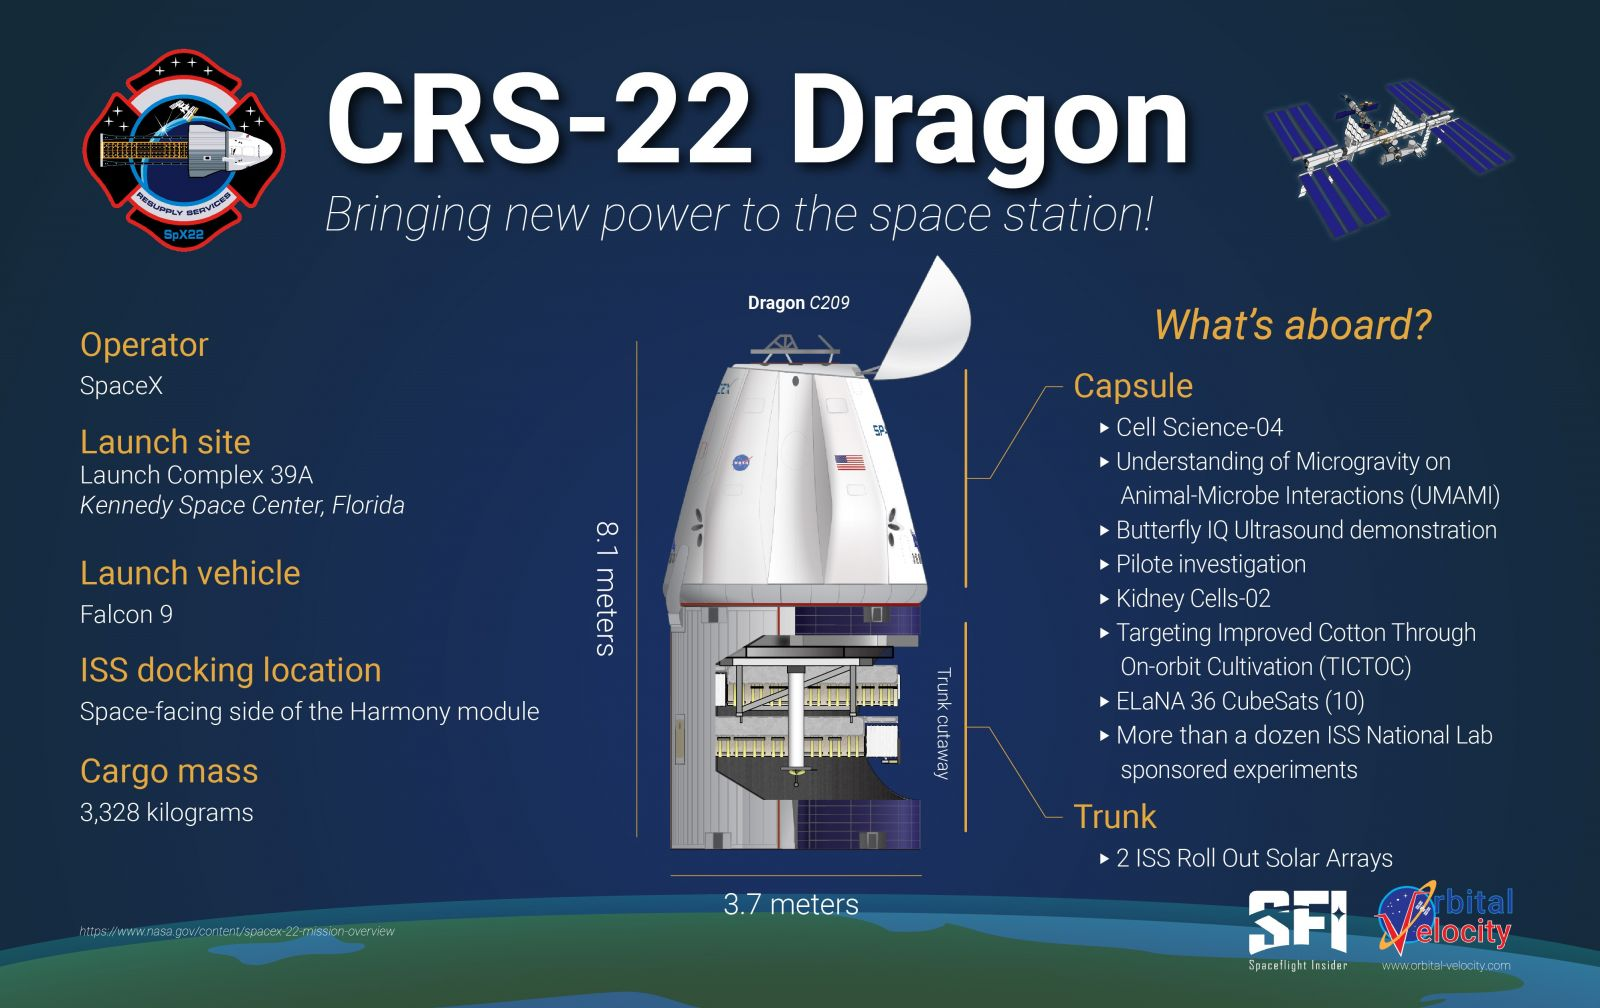 An infographic over some of the items aboard the CRS-22 Dragon spacecraft. Credit: Derek Richardson / Spaceflight Insider / Orbital Velocity